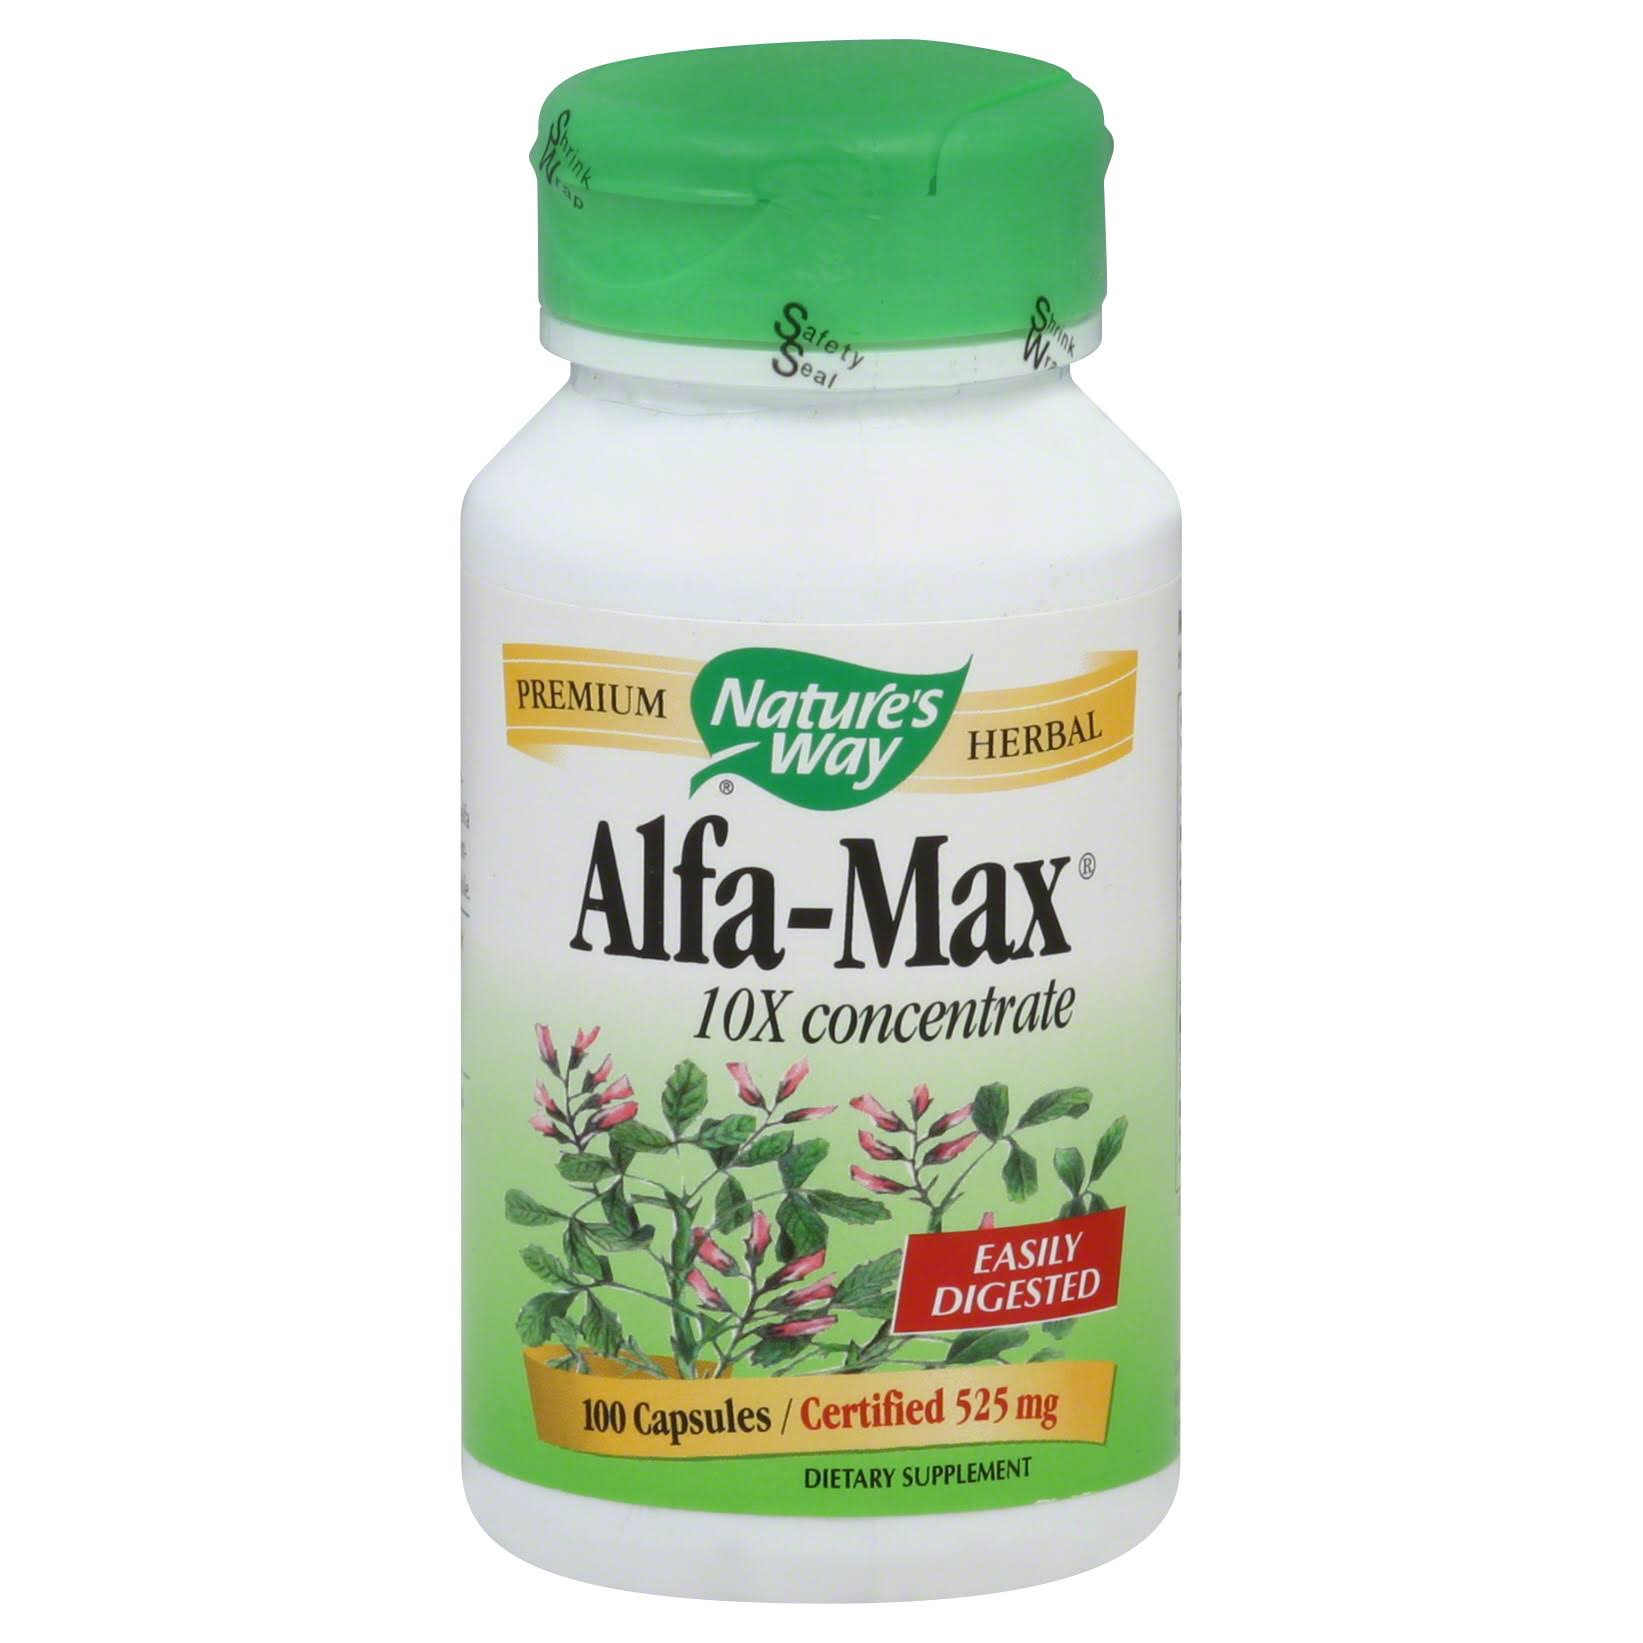 Nature's Way Alfa-Max 10x Concentrate